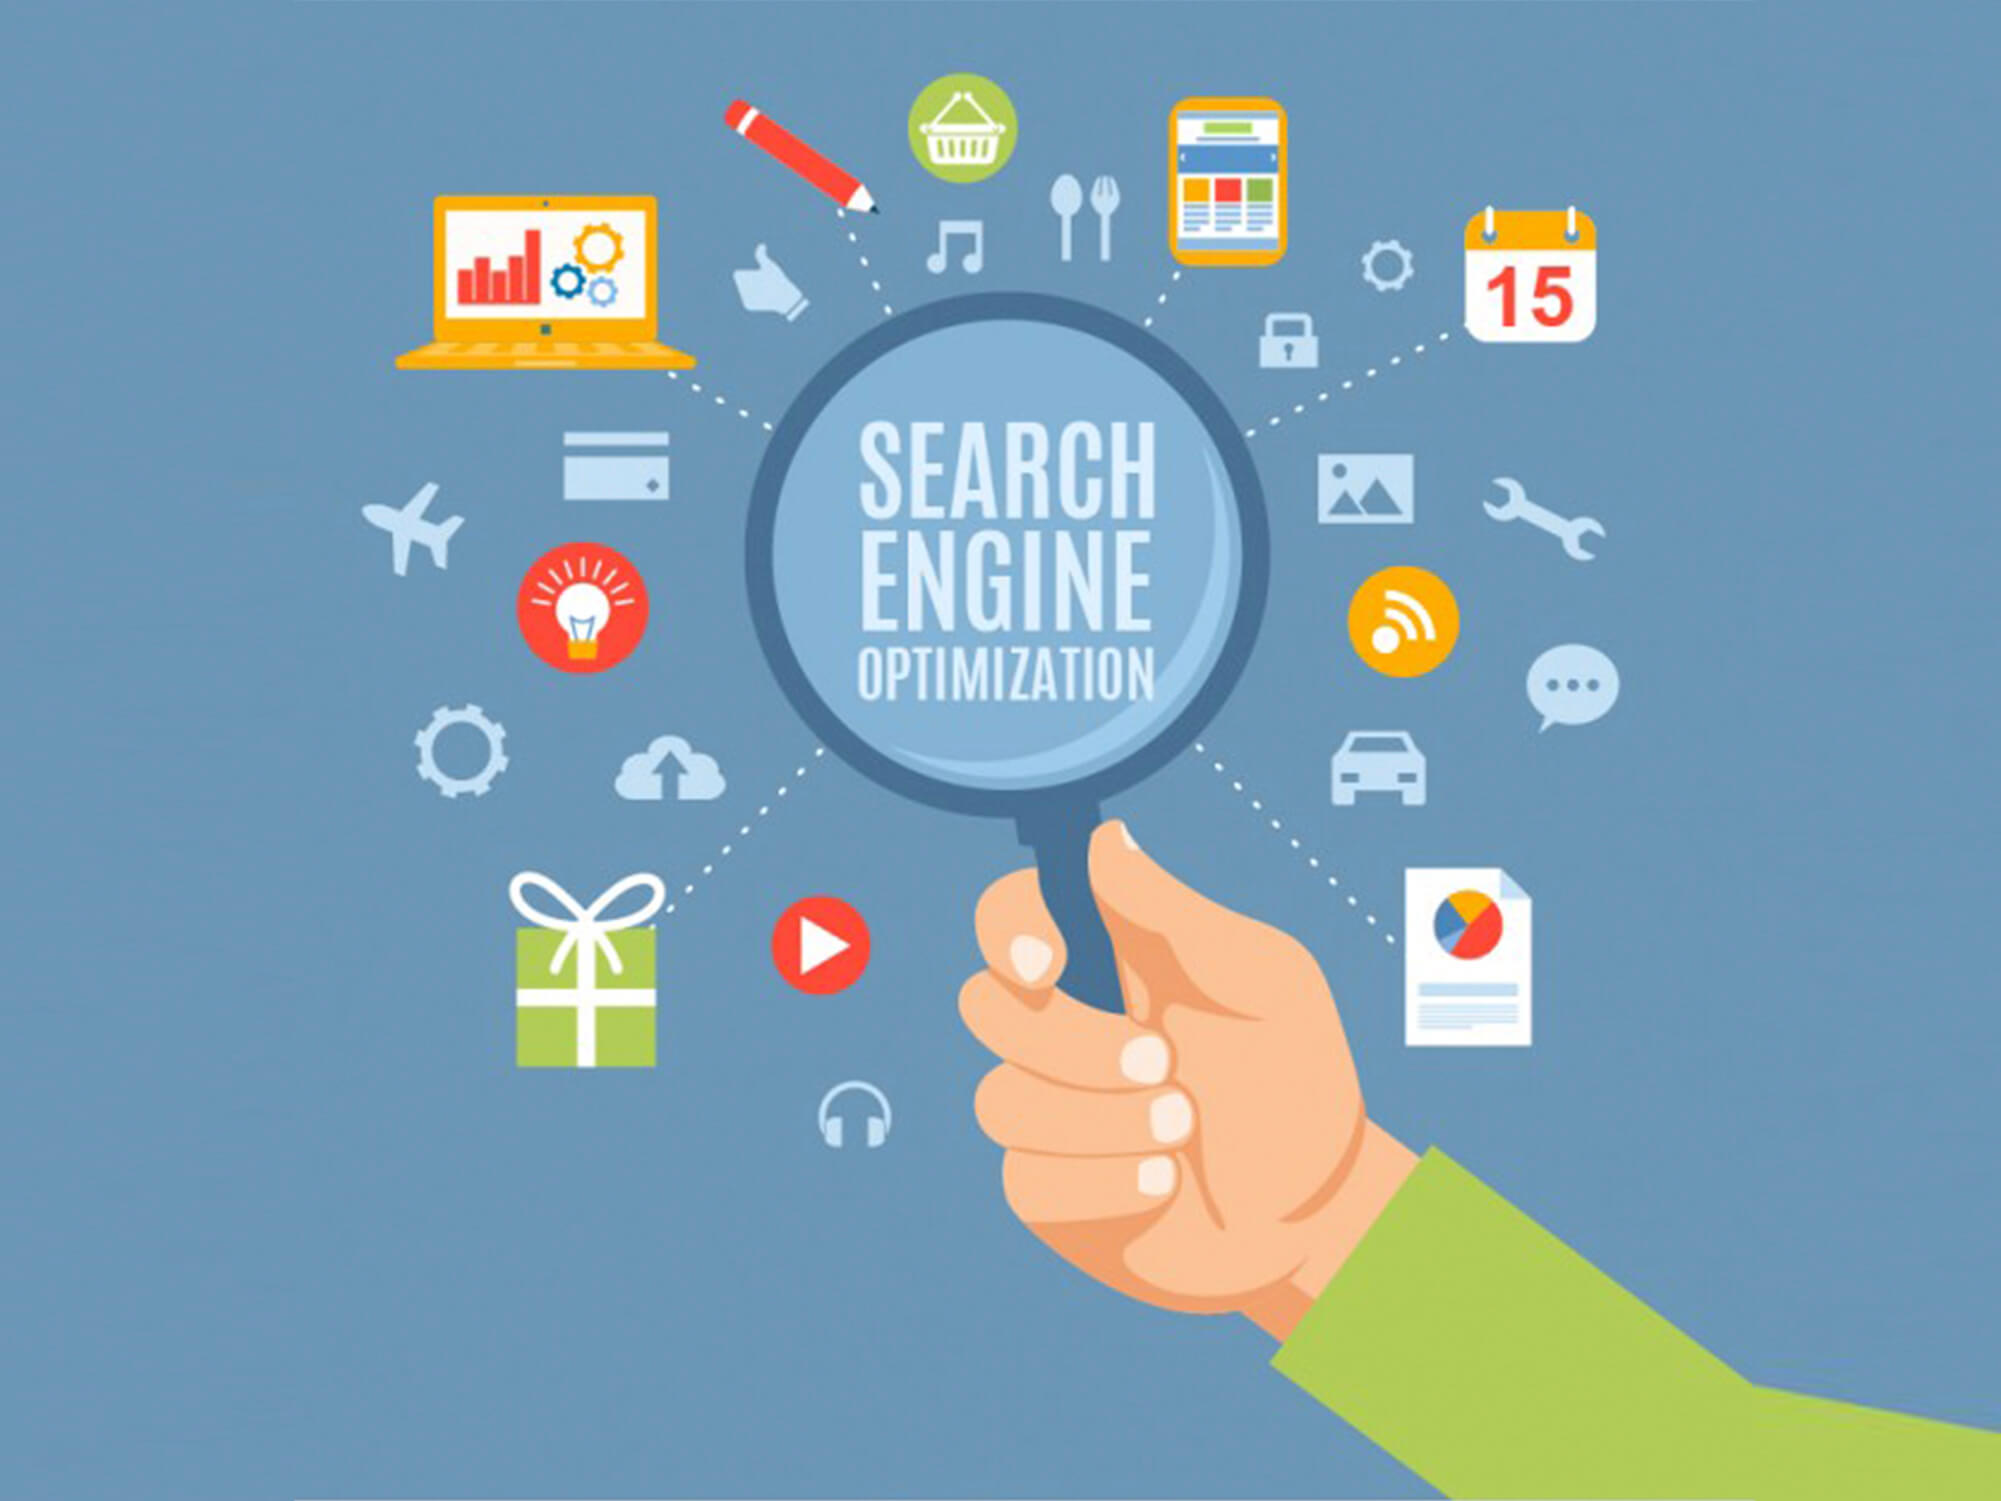 10 SEO Tools Retailers Can Use to Drive More Online and Offline Traffic